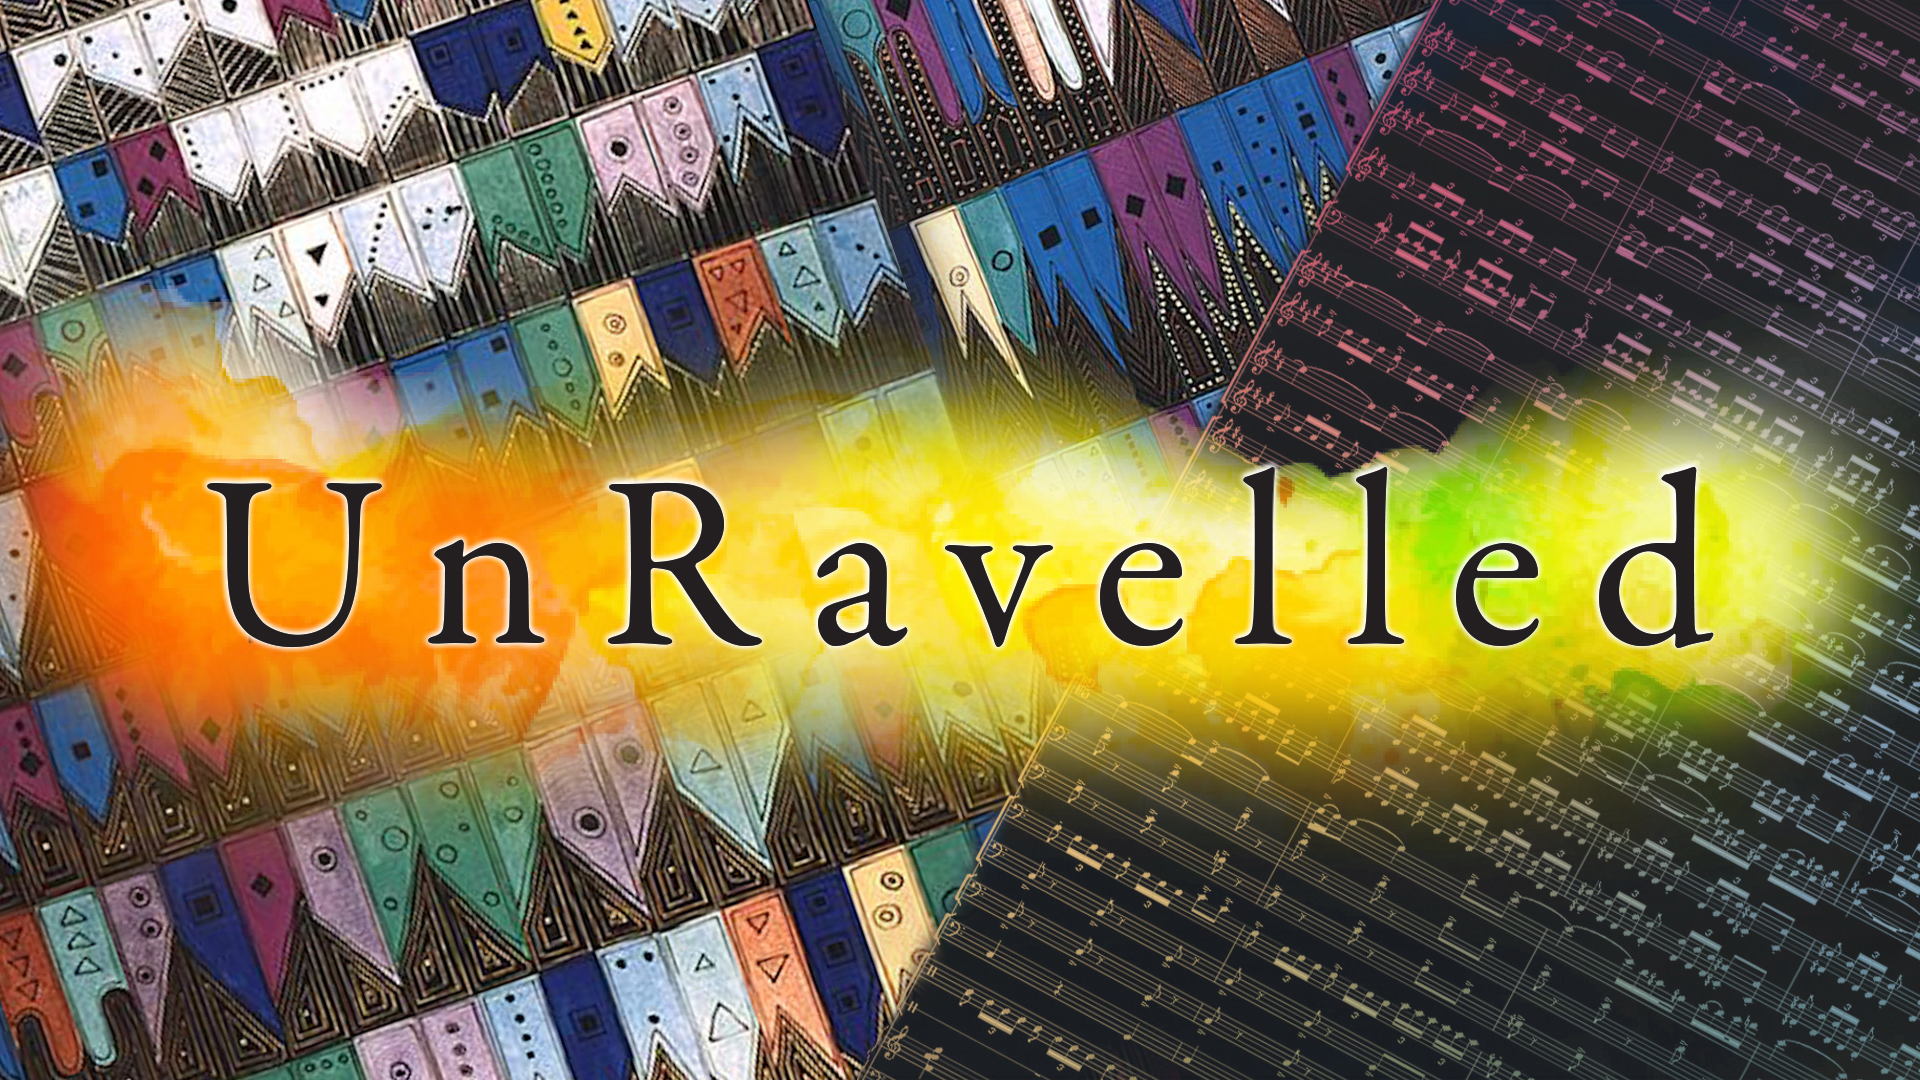 UnRavelled title on top of painting by Anne Adams and score by Maurice Ravel